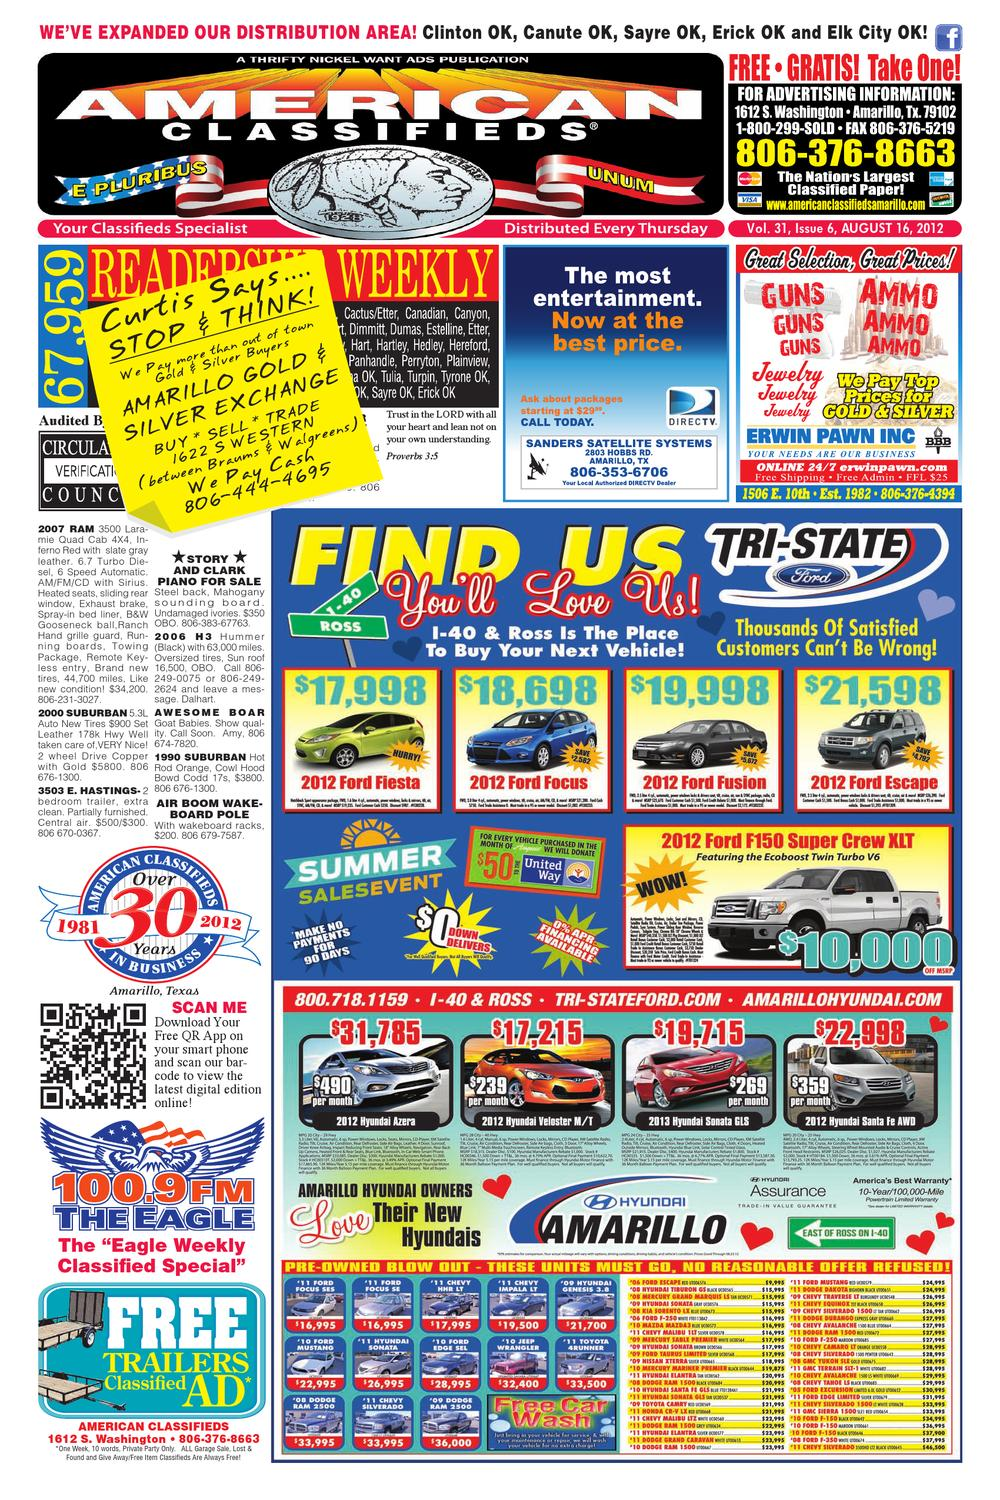 american classifieds amarillo, tx august 16, 2012 by americanamerican classifieds amarillo, tx august 16, 2012 by american classifieds issuu